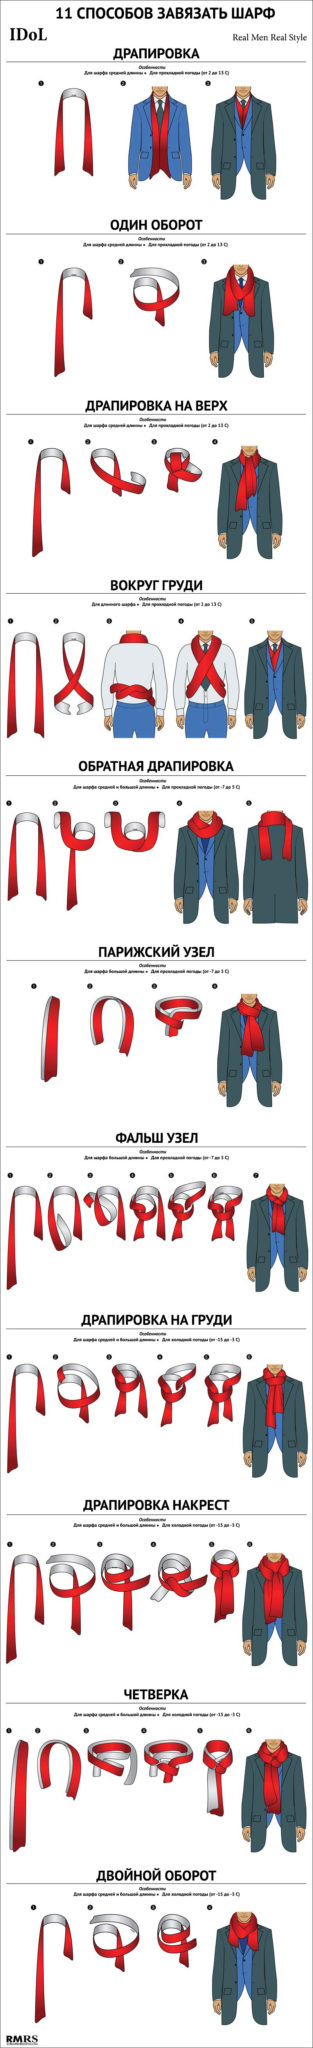 11-ways-to-tie-a-scarf-poster-800